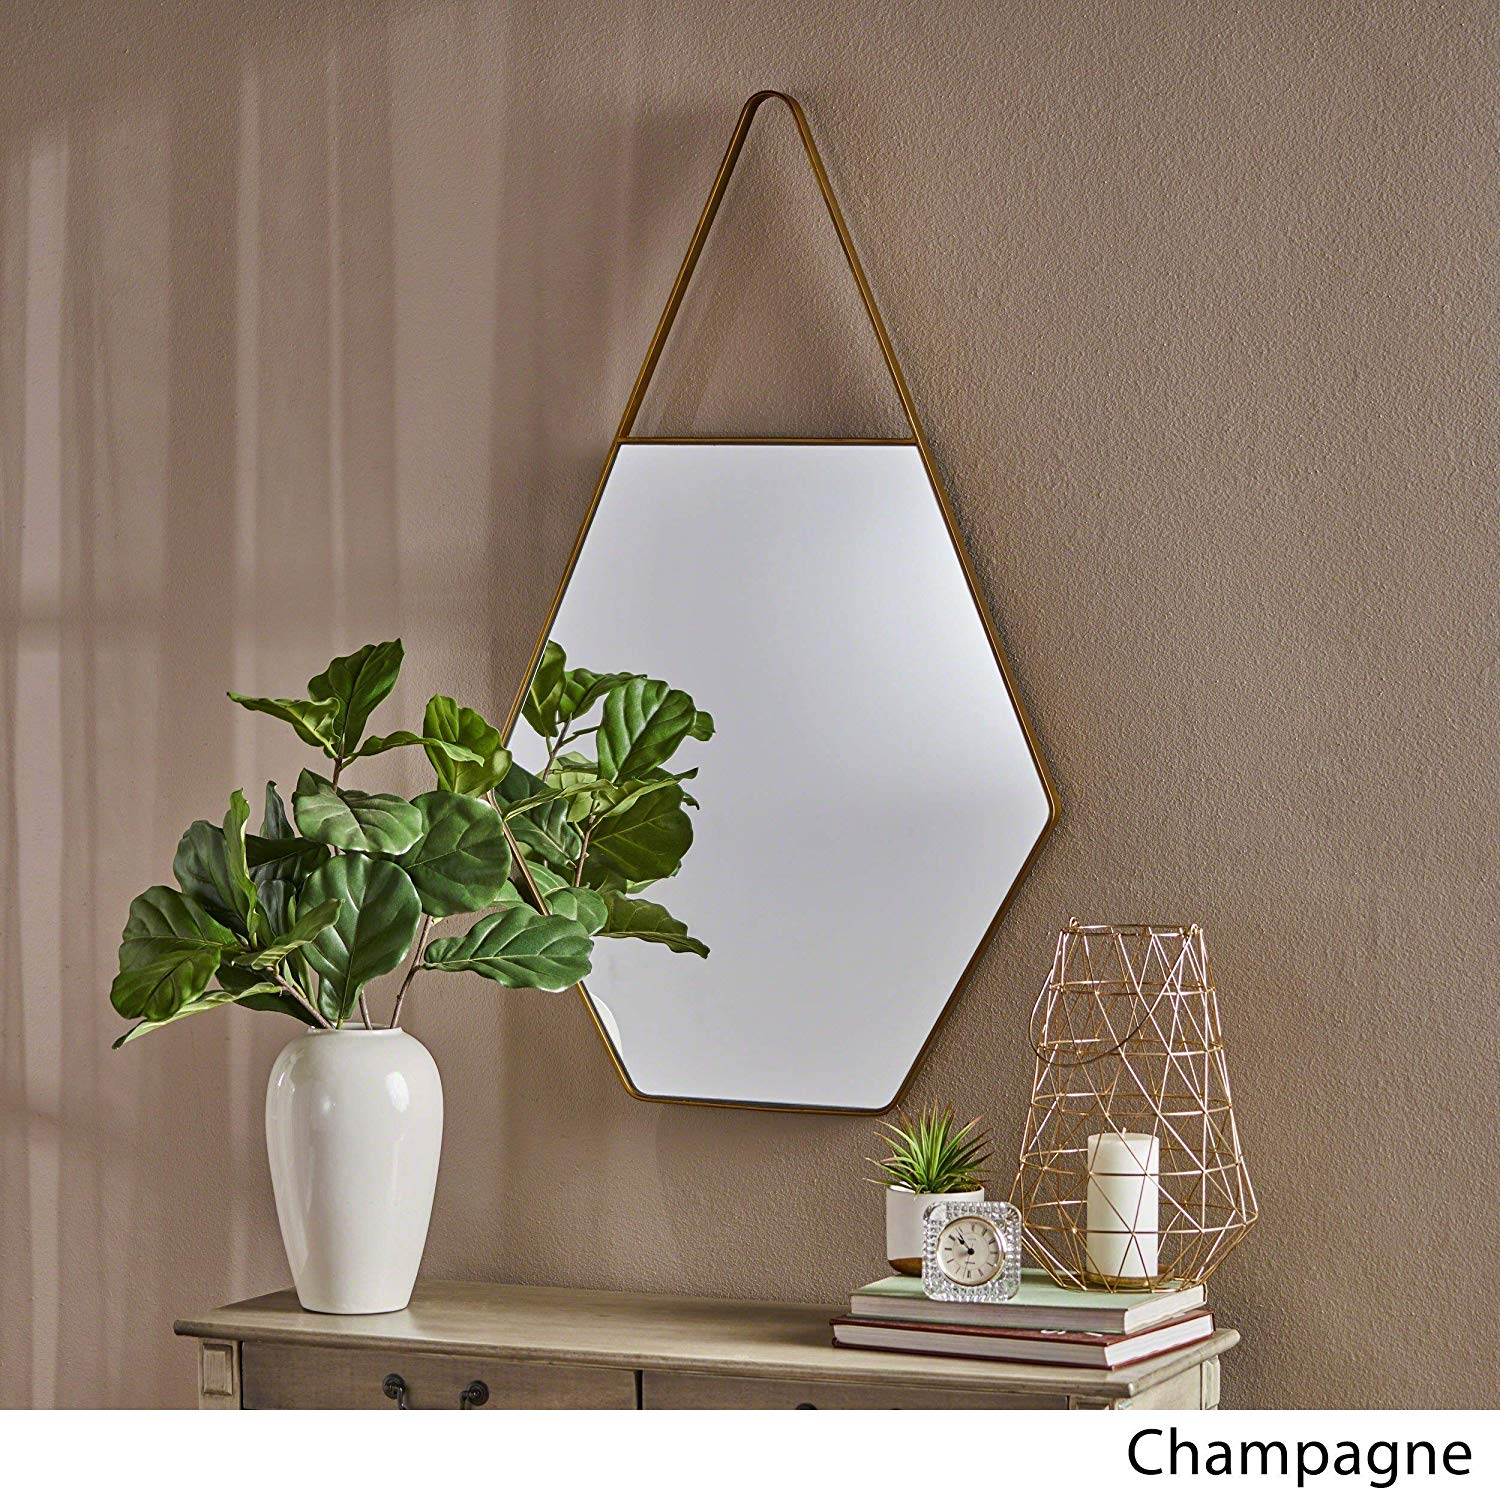 Hexagon Mirror Wall Mounted Hexagonal Hanging Horizontal Modern Brown Metal Glass